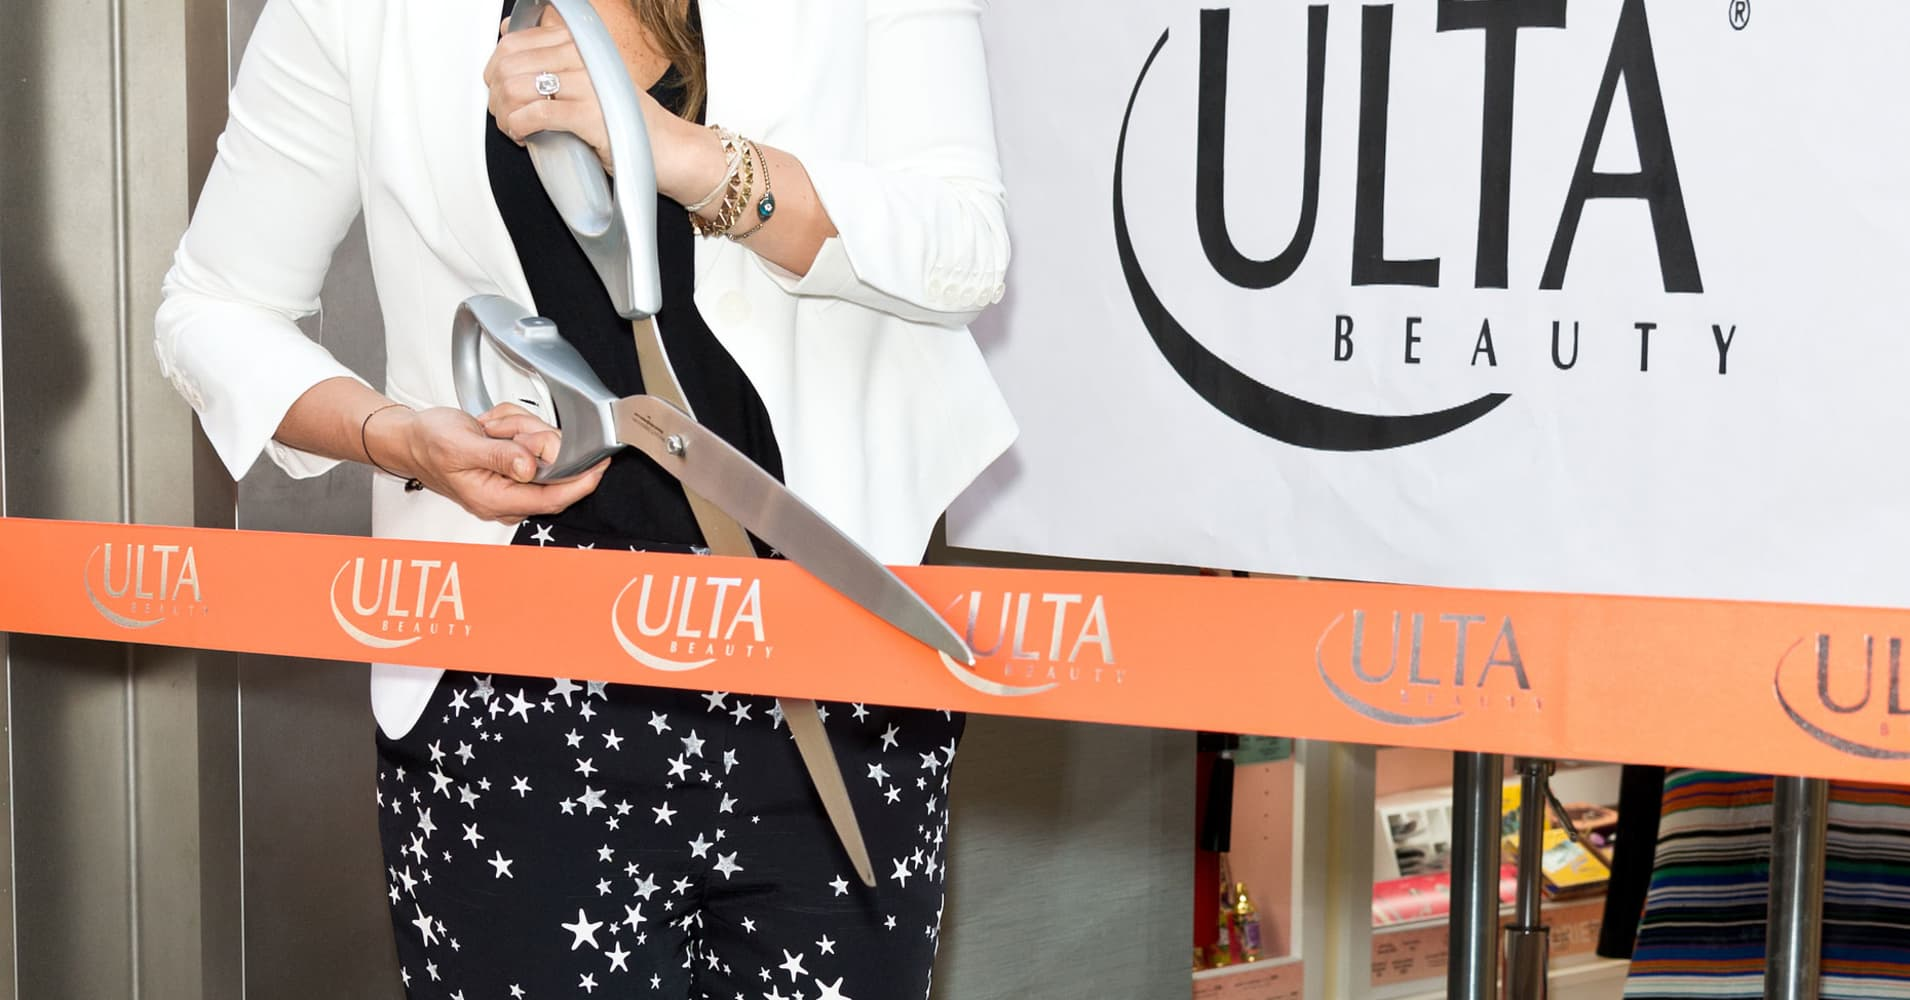 Stocks making the biggest moves after hours: Ulta Beauty, Broadcom, Facebook and more